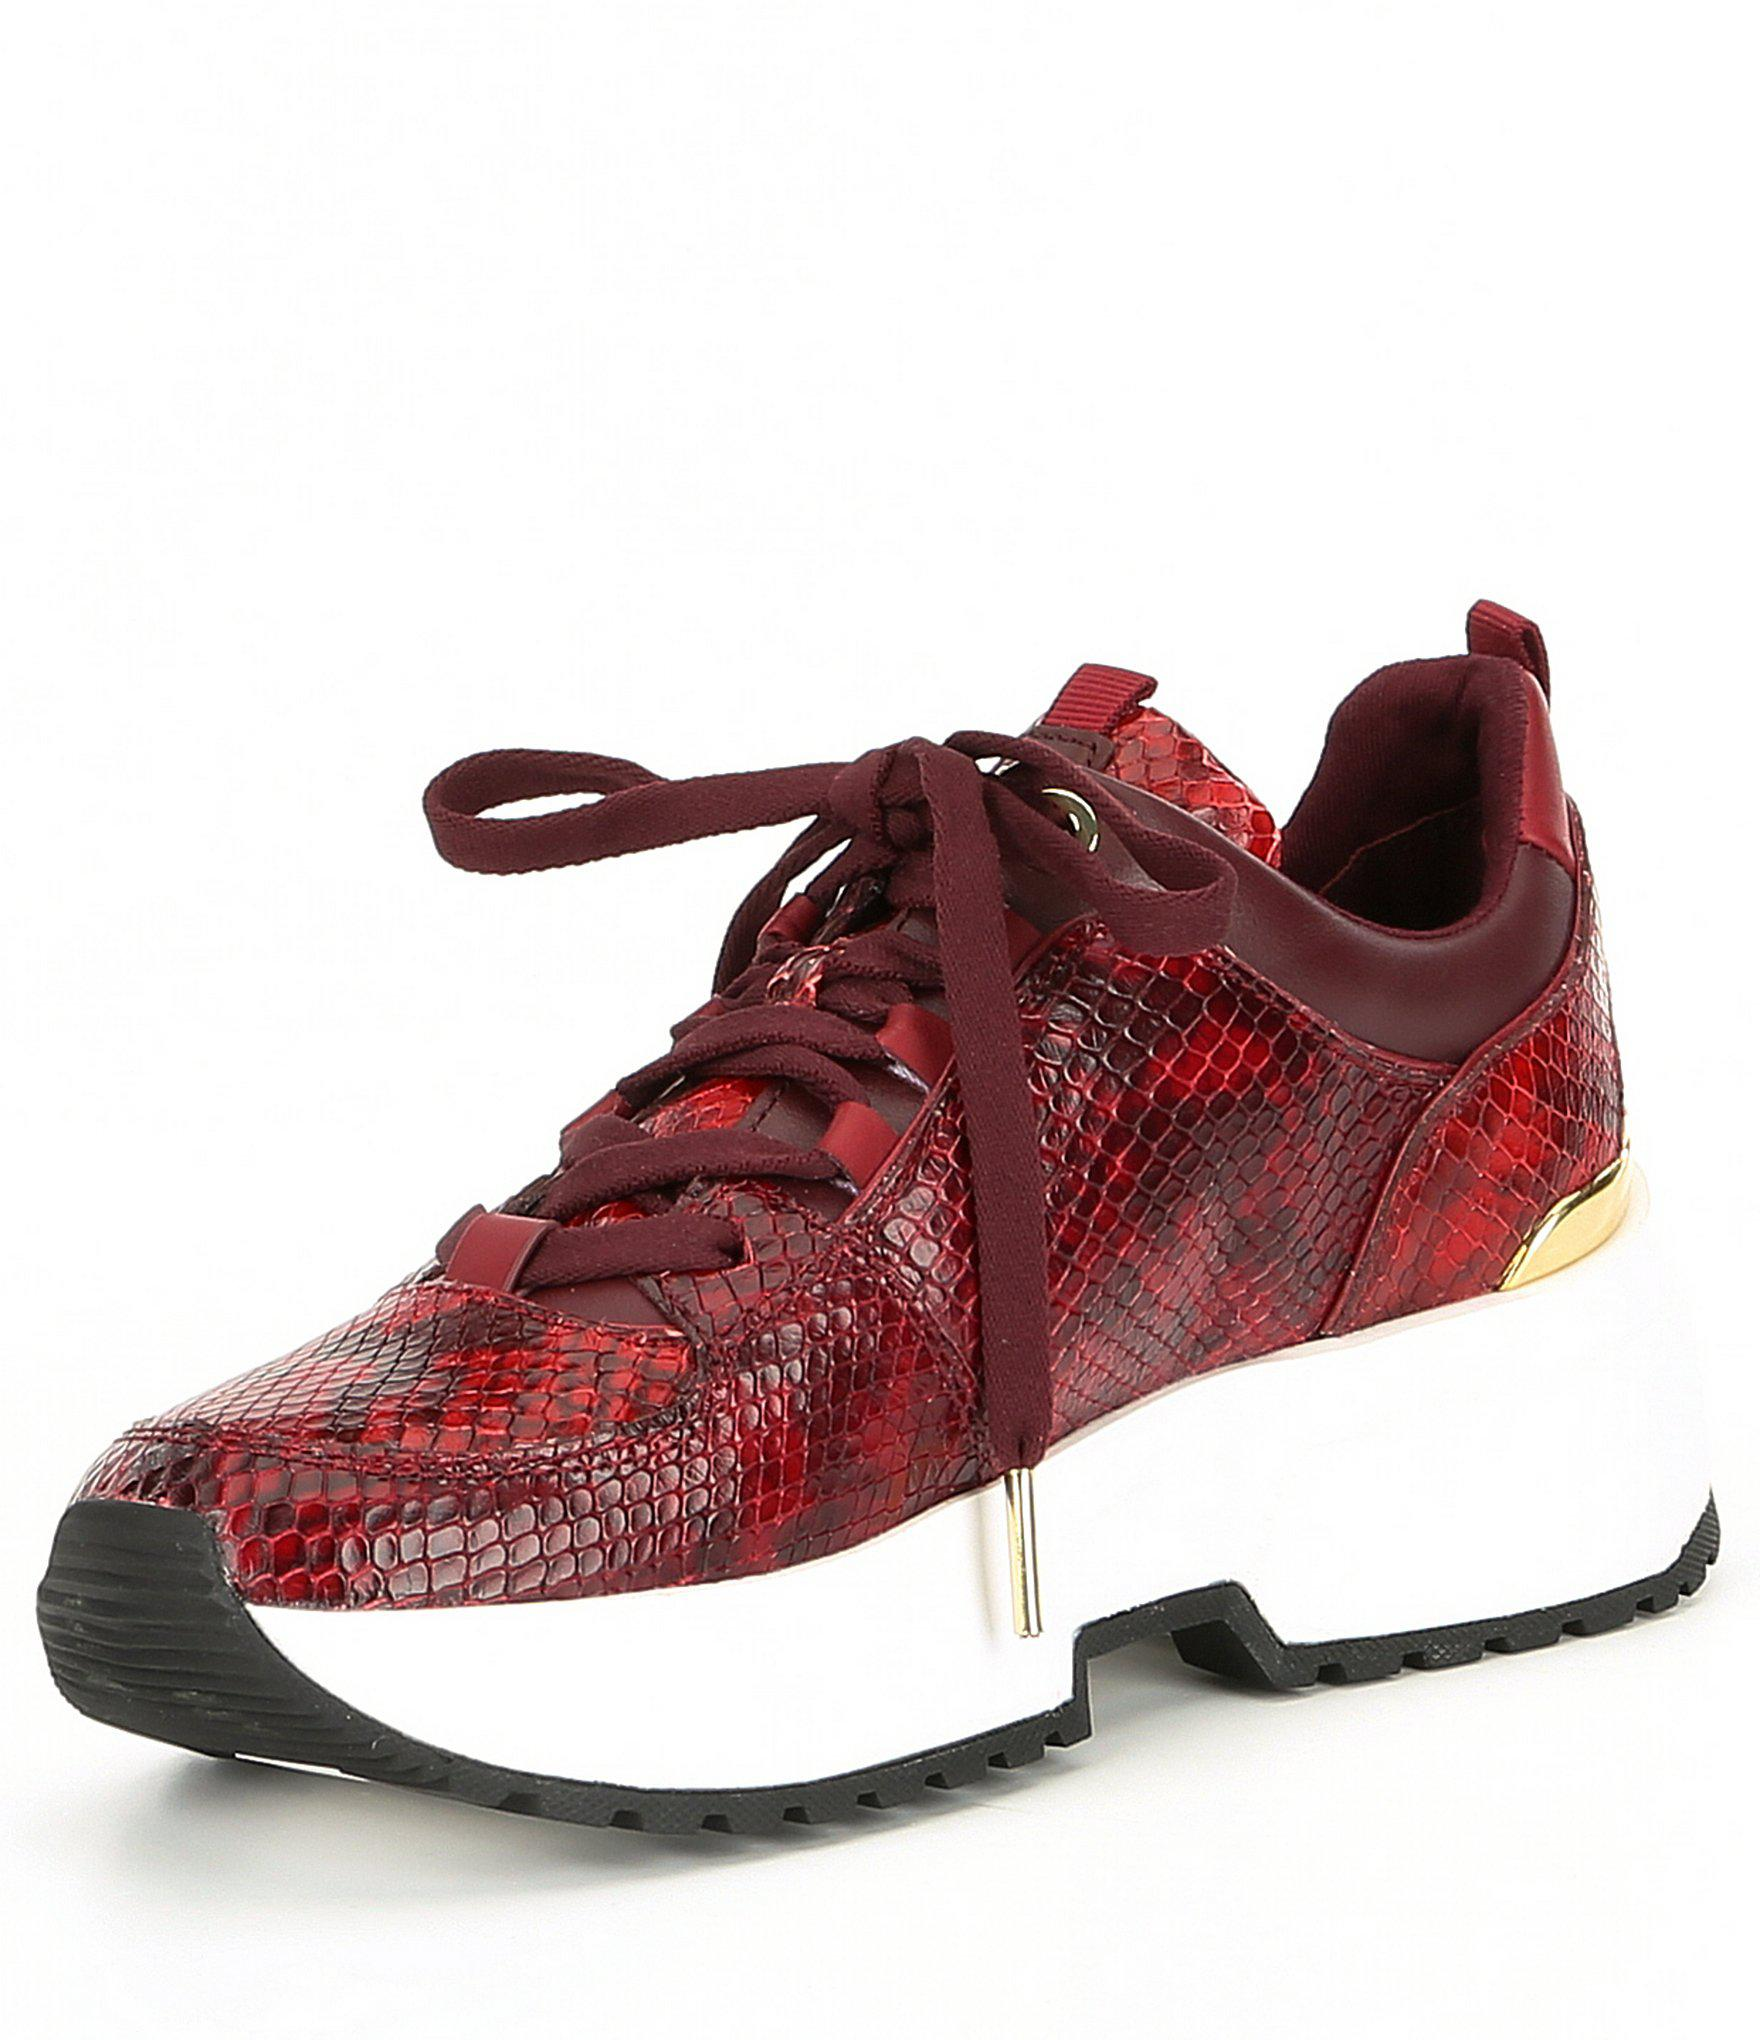 94382a3f0be7 Lyst - MICHAEL Michael Kors Cosmo Trainer Snake Printed Leather ...